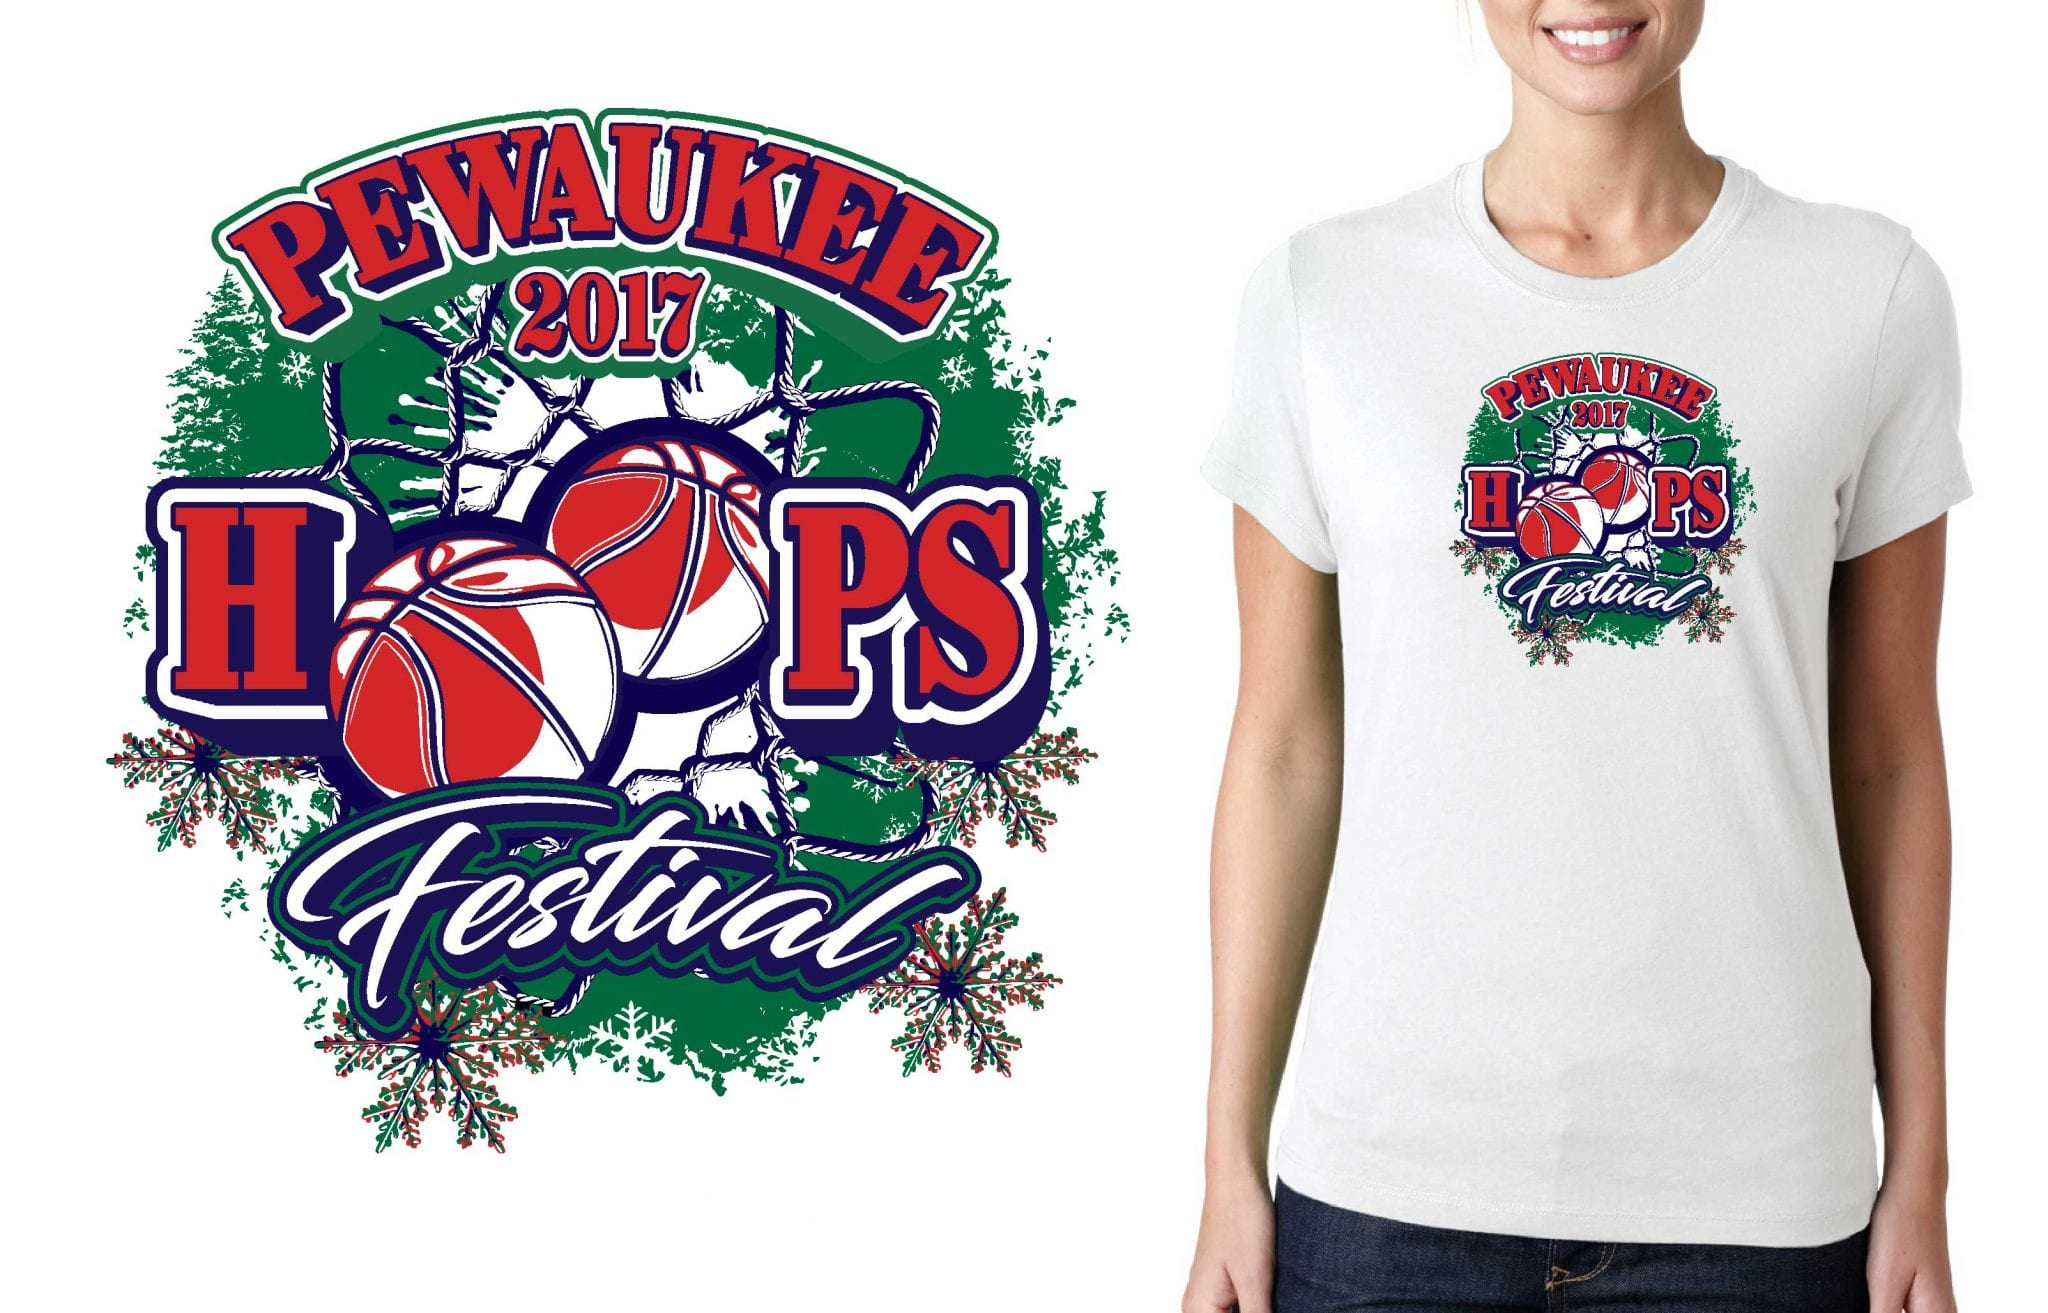 2017 Pewaukee Hoops Festival vector logo design for basketball t-shirt UrArtStudio